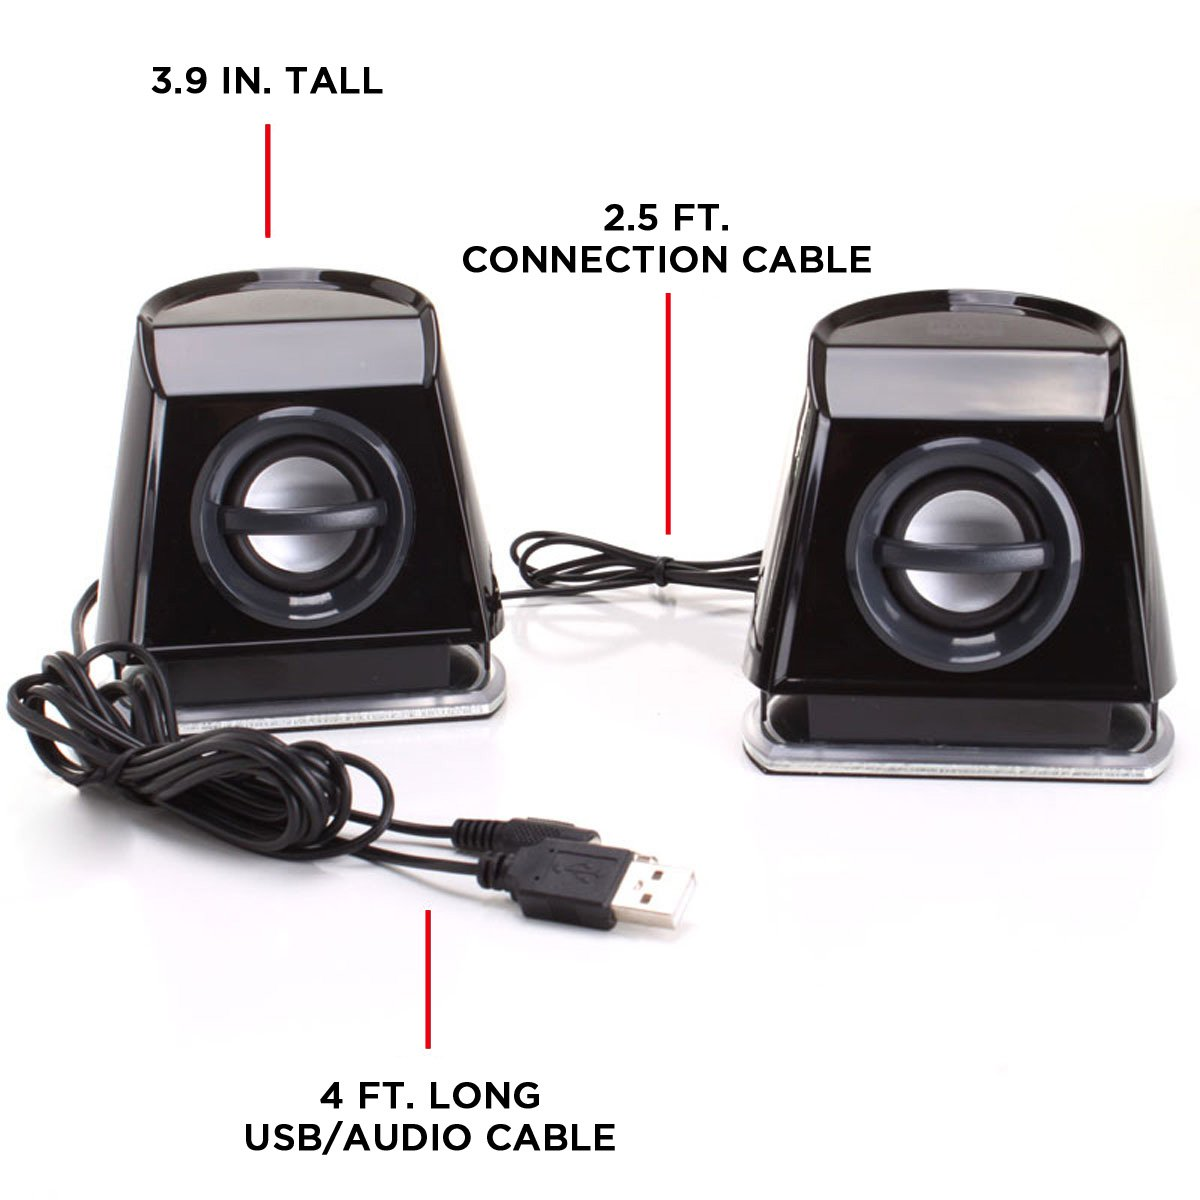 GOgroove 2MX LED Computer Speakers with Powered Subwoofer, Green Glowing Lights and Stereo Sound - Wired 3.5mm Audio Input Connection, USB Powered for PC, Desktop and Laptop Computers by GOgroove (Image #6)